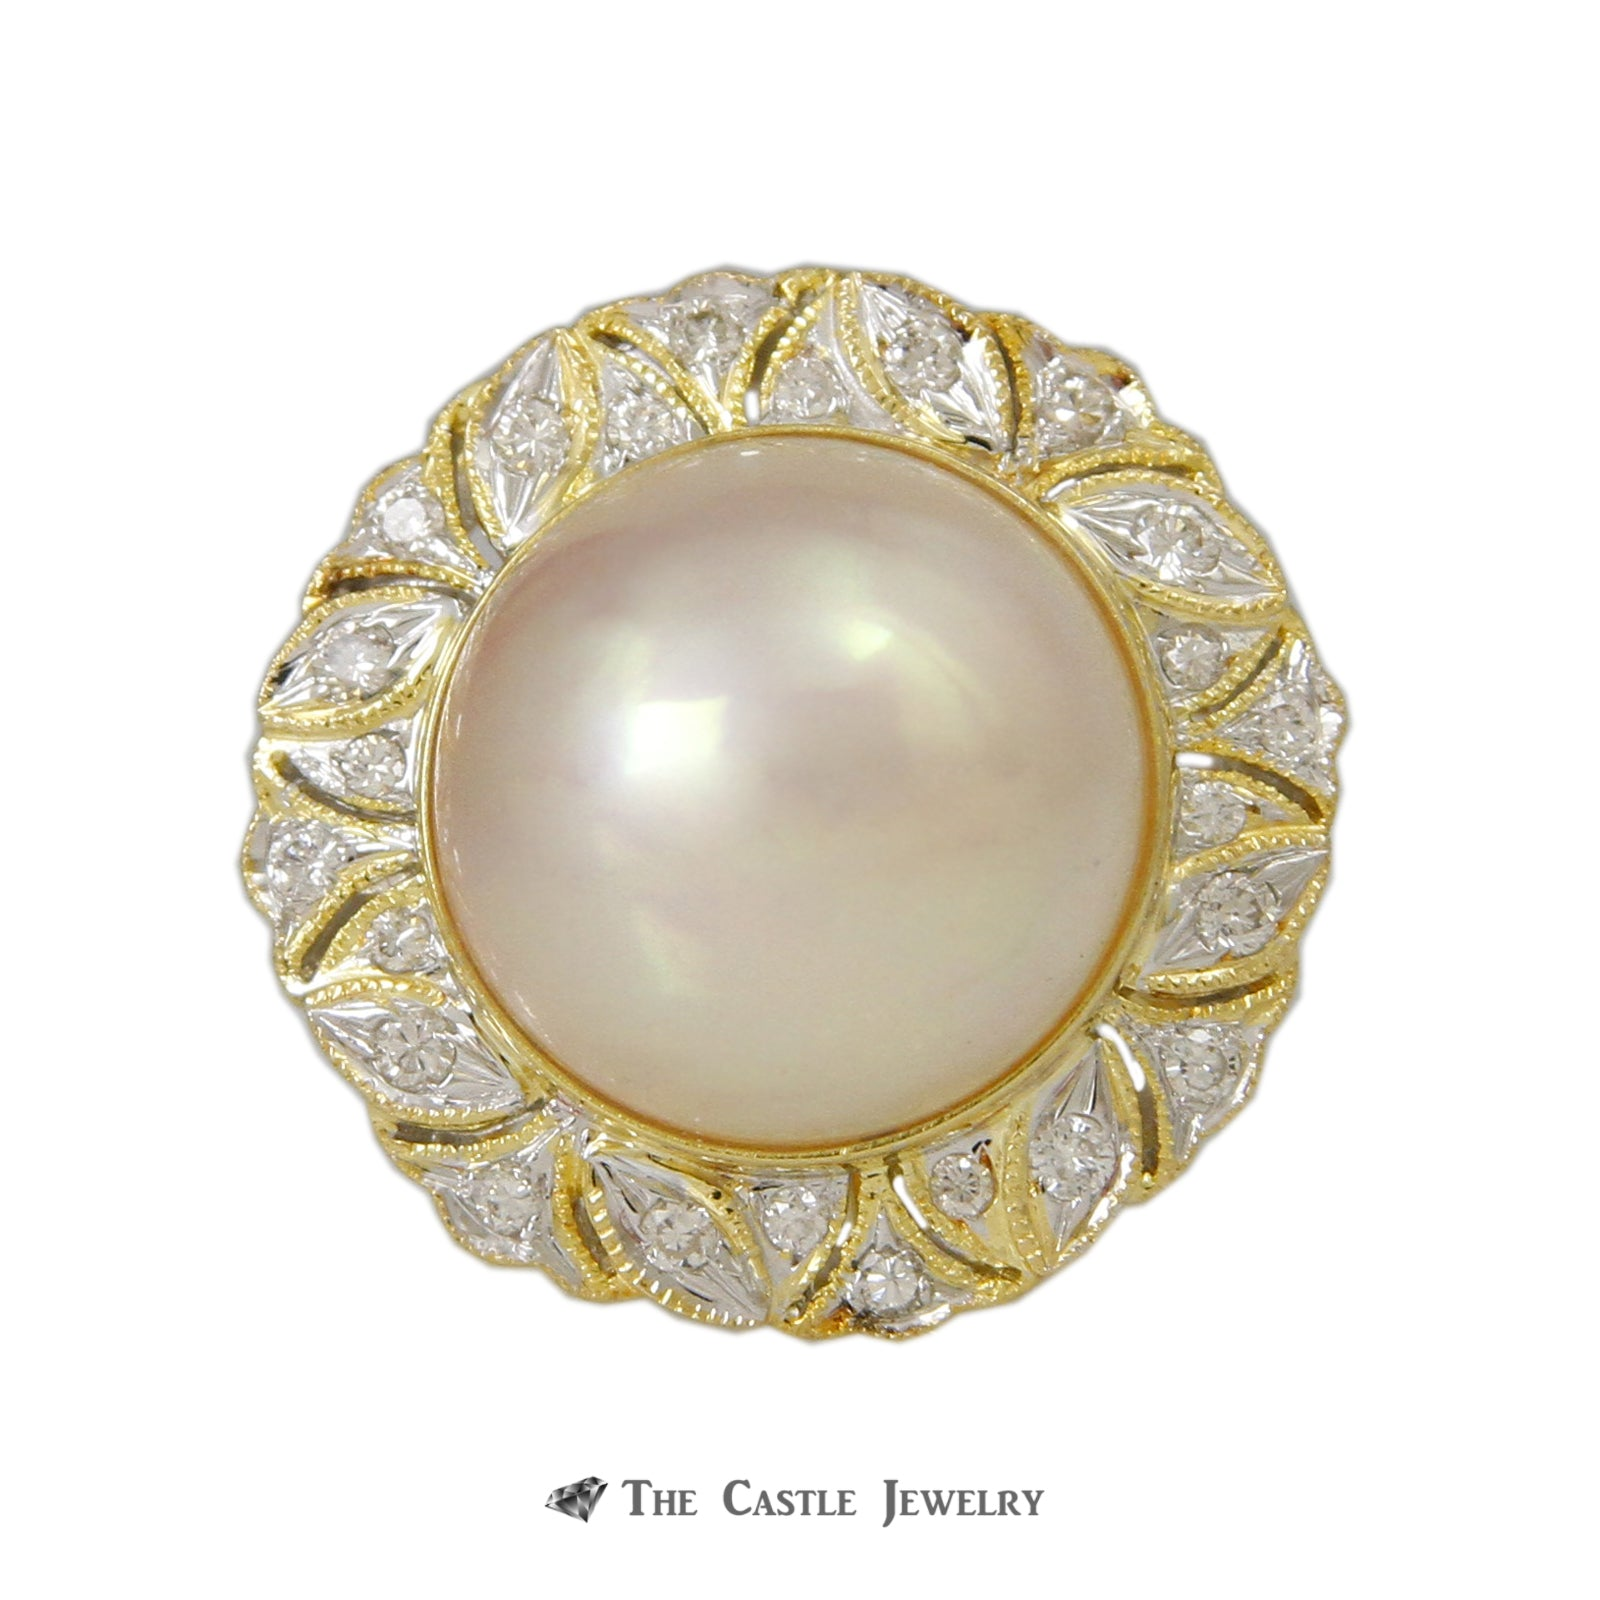 Mabe Pearl Ring with 1/4cttw Round Brilliant Cut Diamond Bezel in 18K Yellow Gold